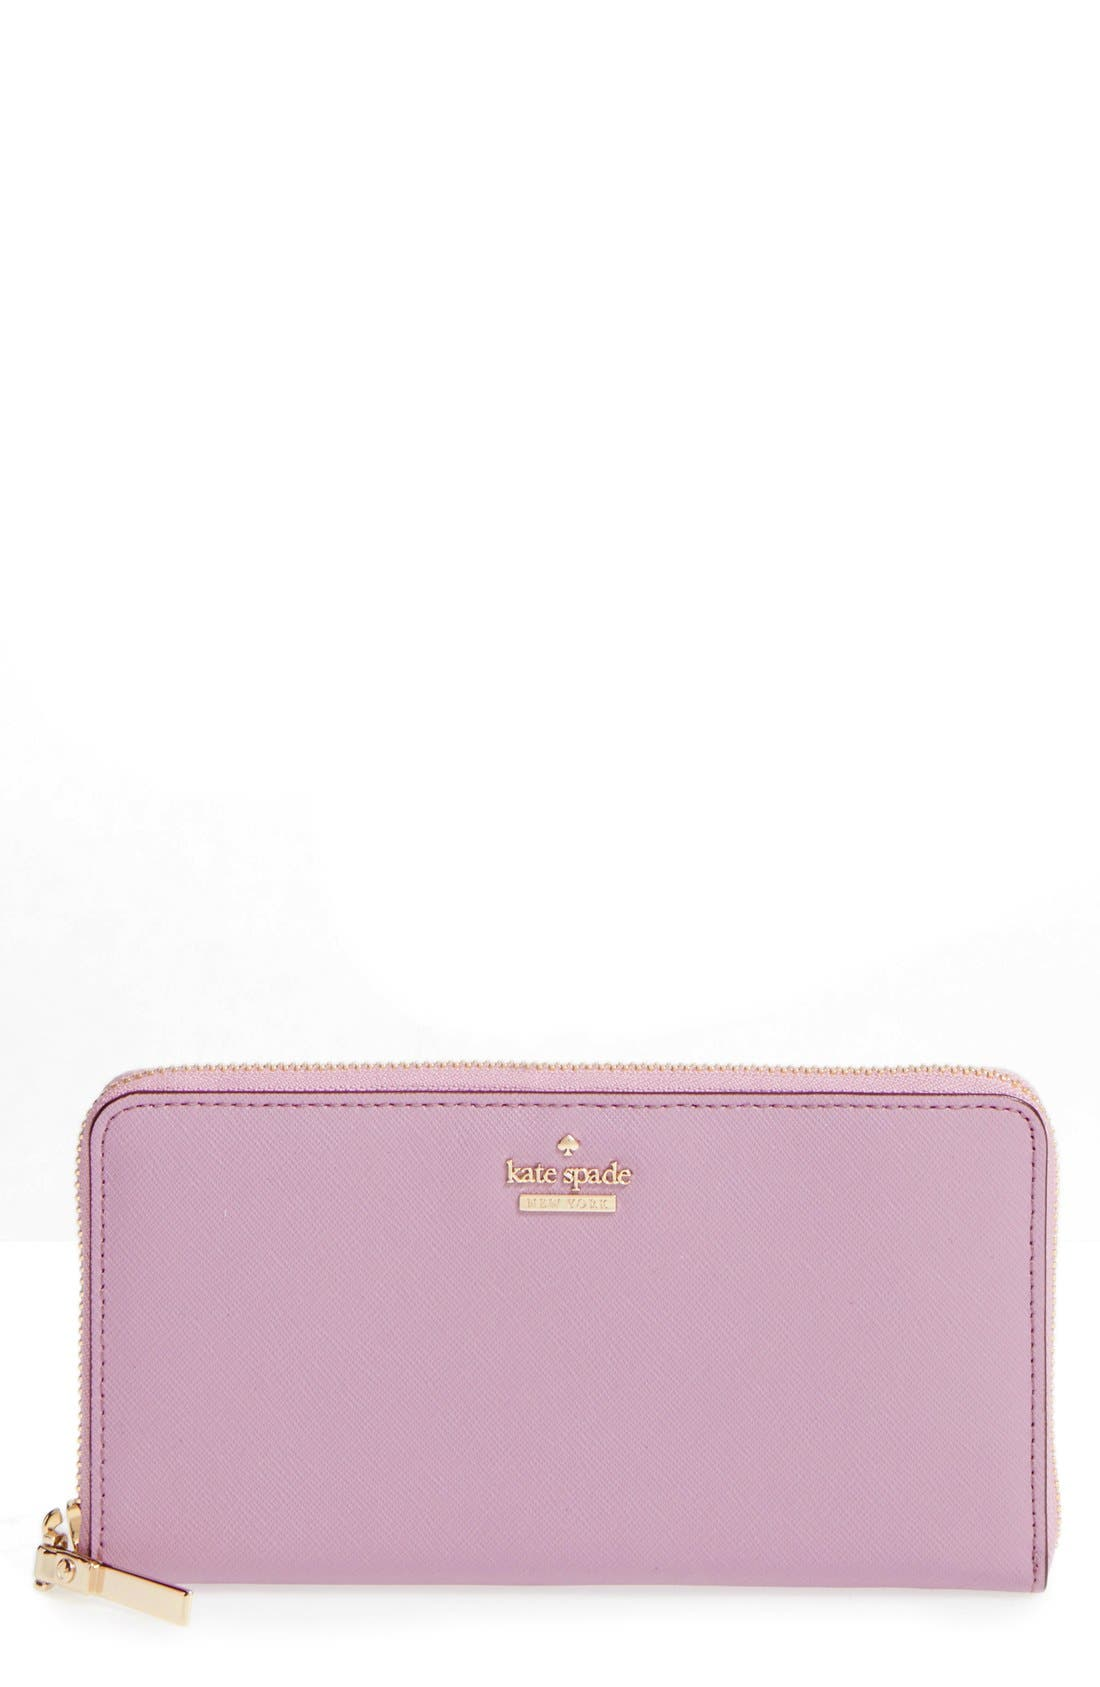 'cameron street - lacey' leather wallet,                             Main thumbnail 16, color,